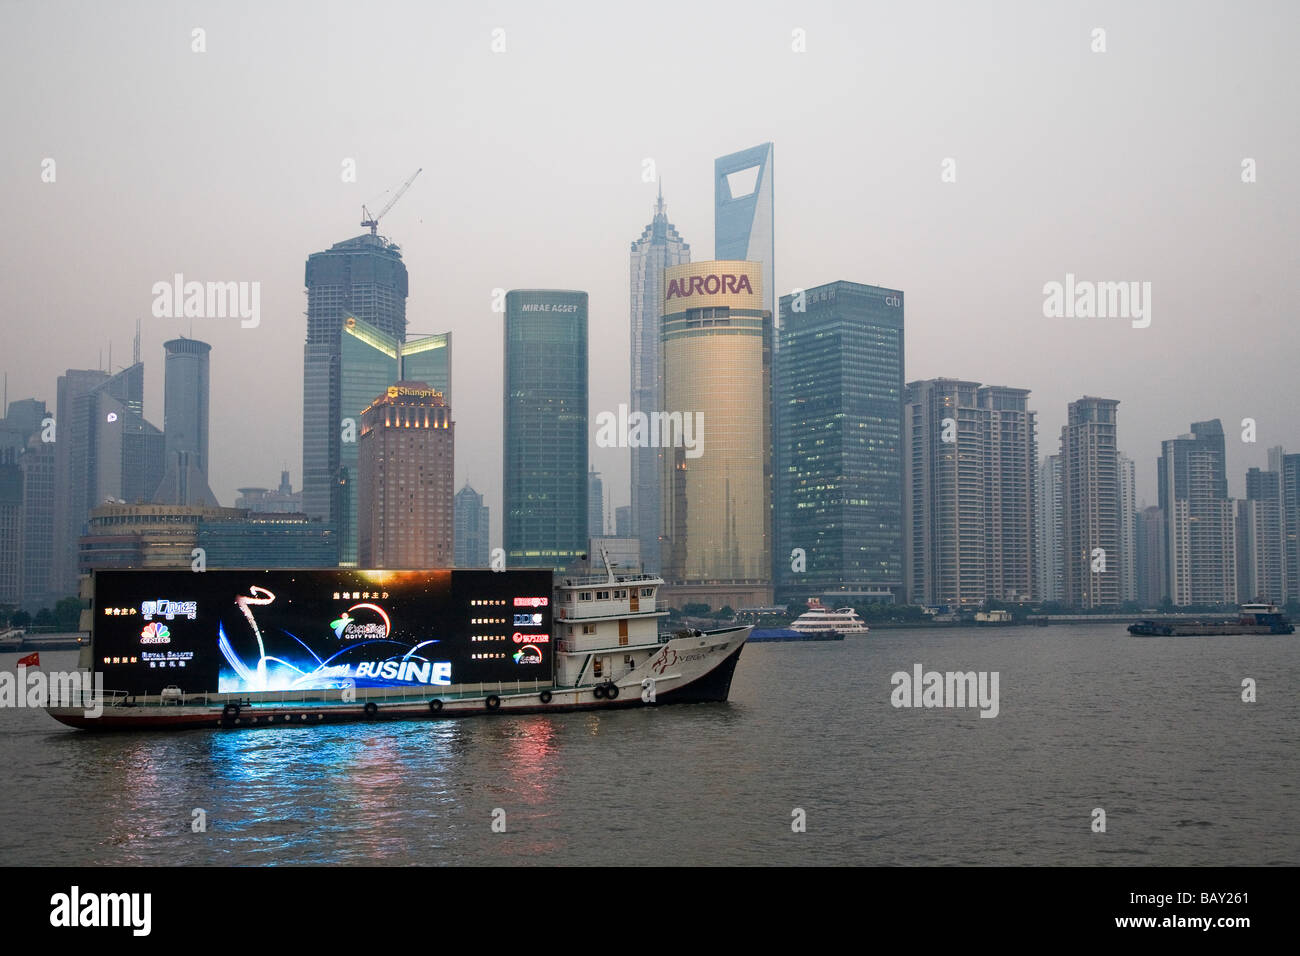 A Mobile Advertising Billboard Floats Down The Huangpu River